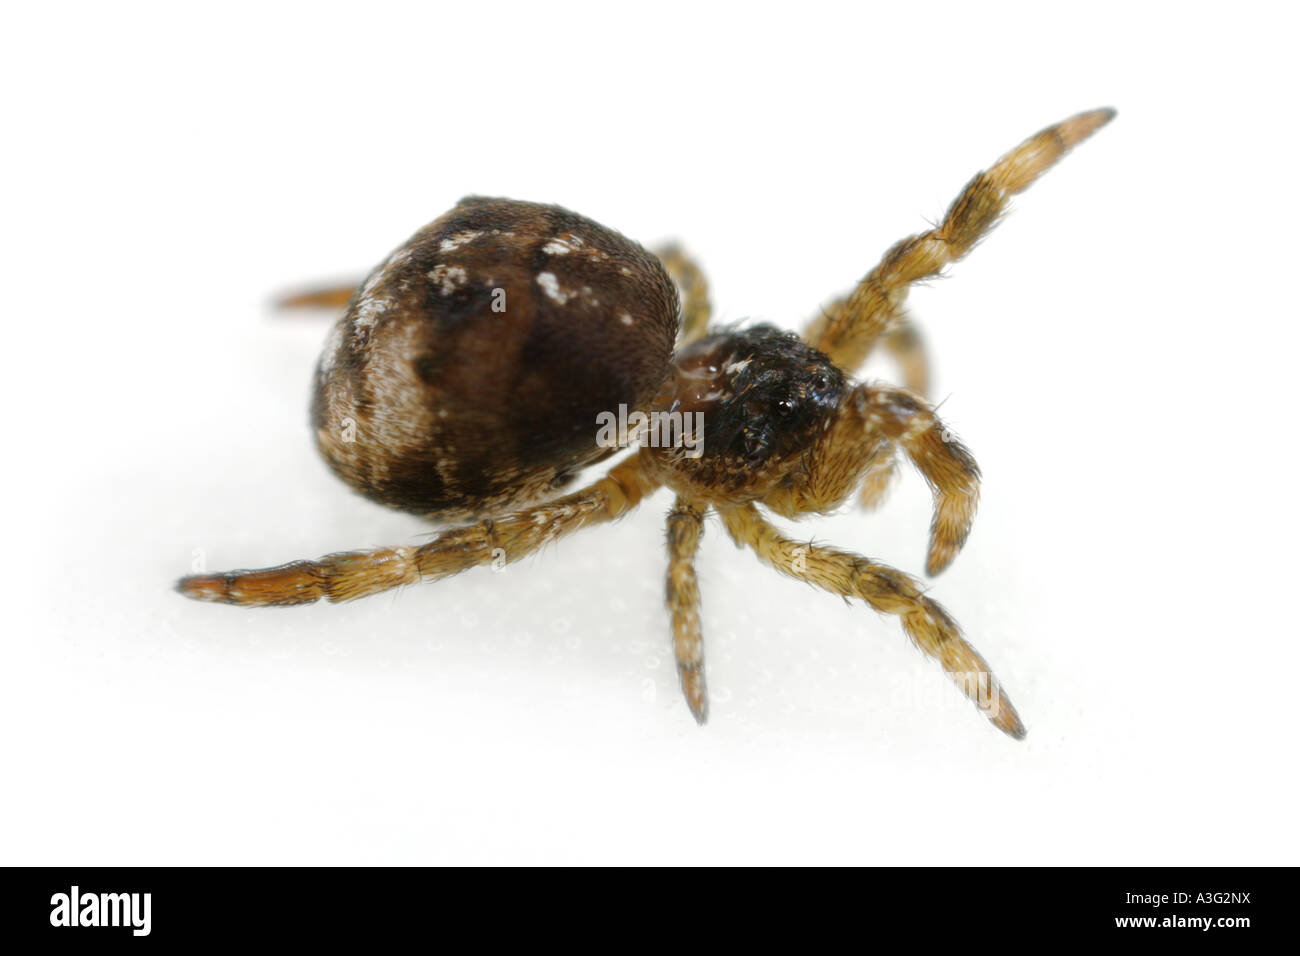 Hyptiotes paradoxus spider, family Uloboridae, on White Background. - Stock Image